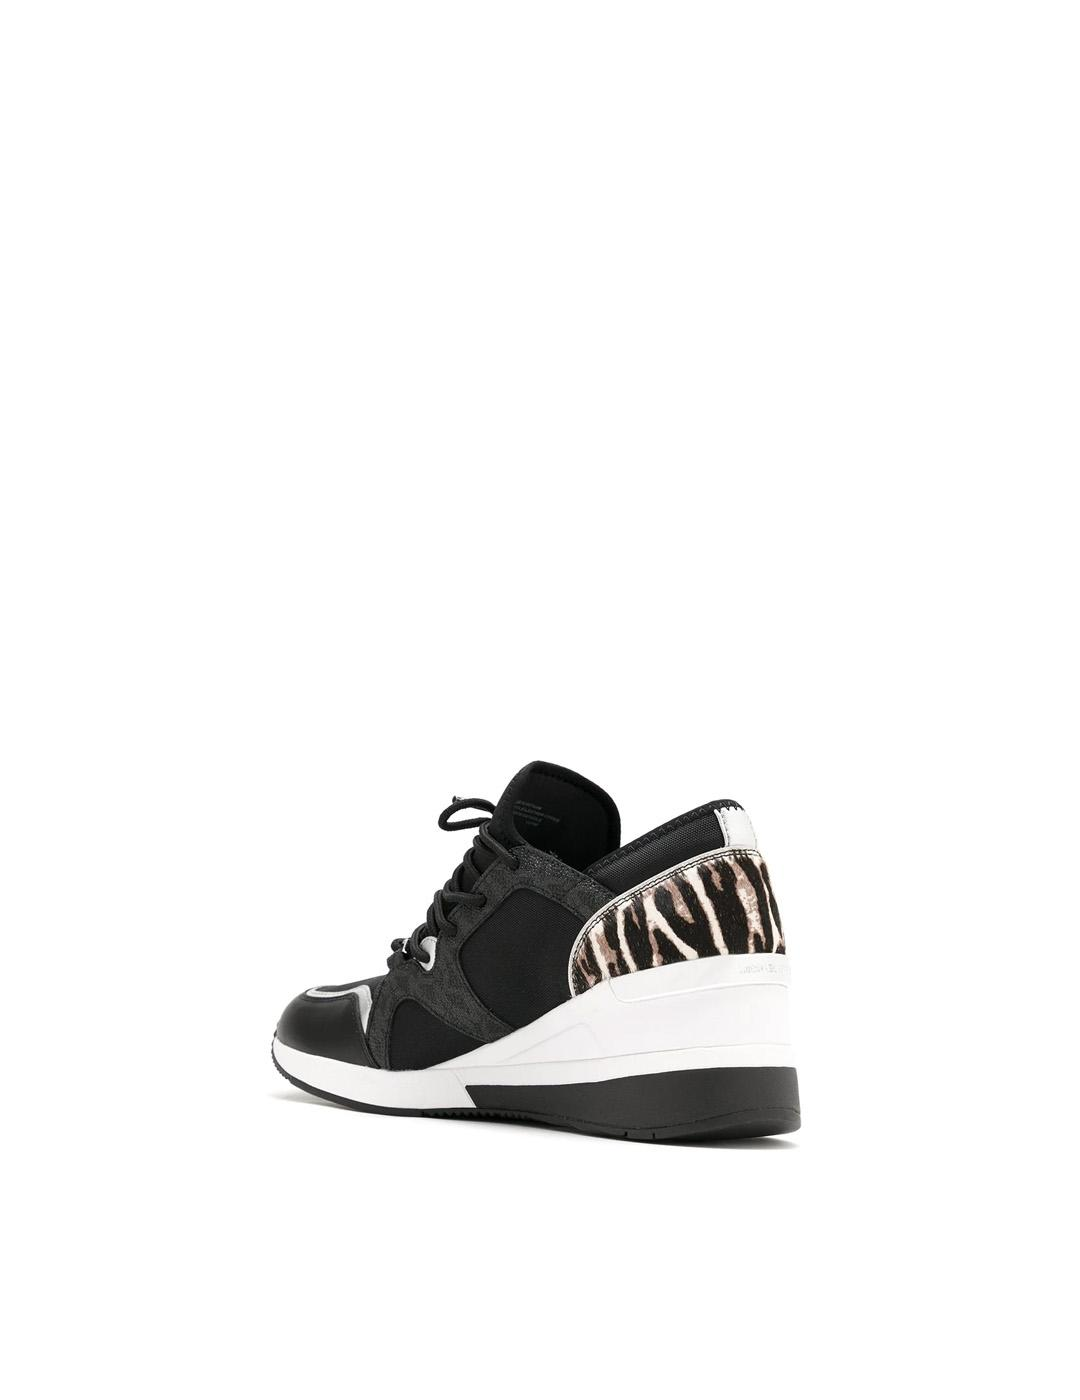 Sneakers Michael Kors negros Liv Trainer Canvas